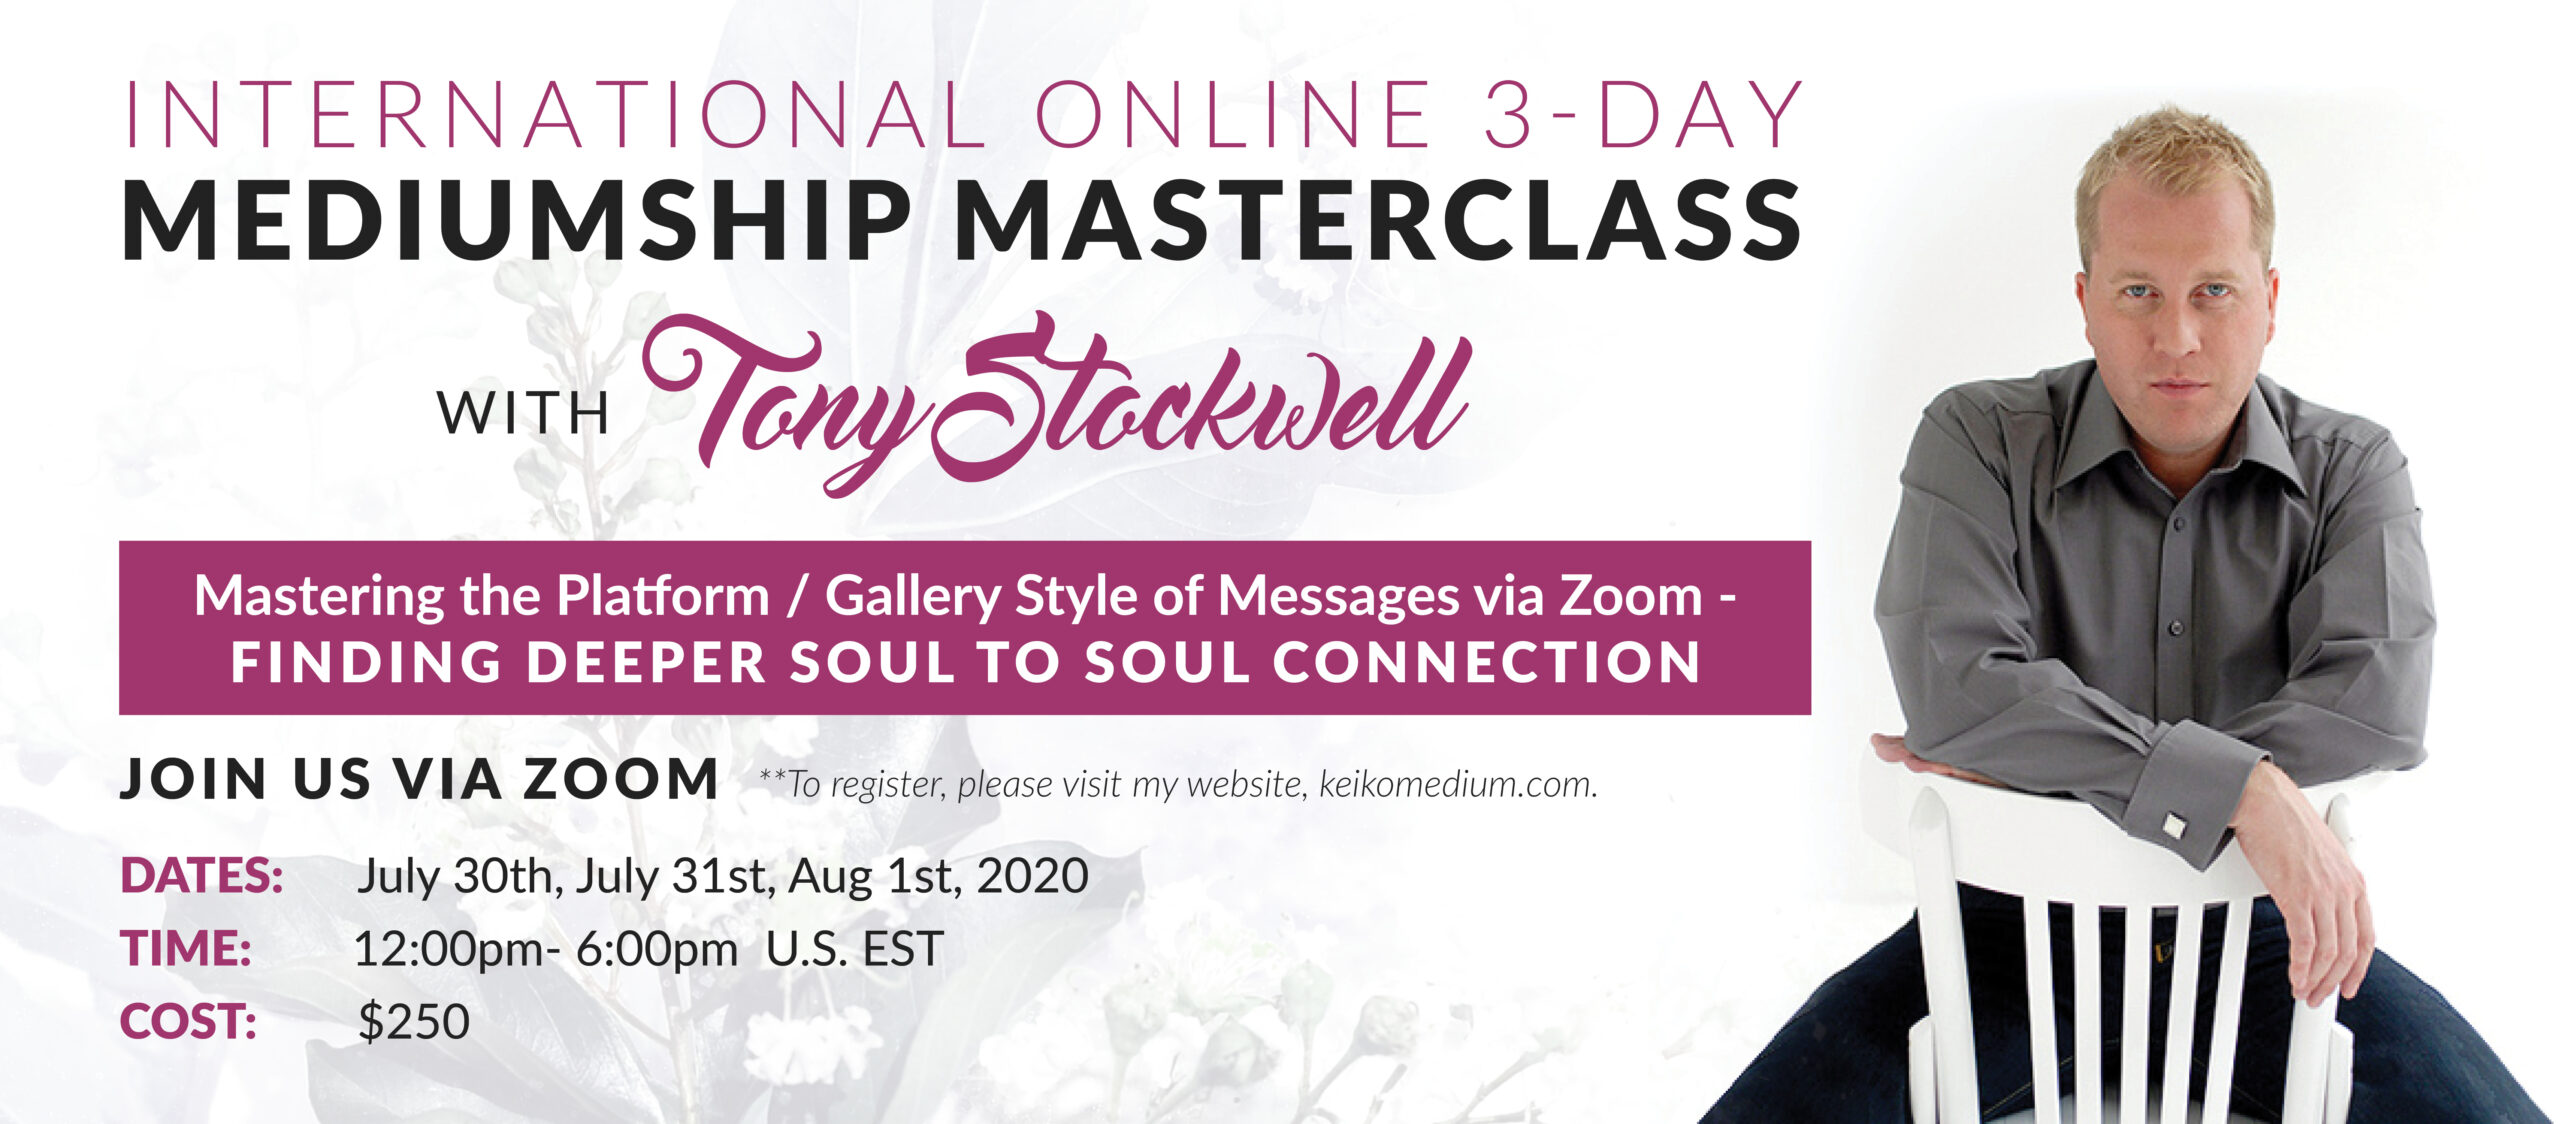 Mediumship Master Class with Tony Stockwell